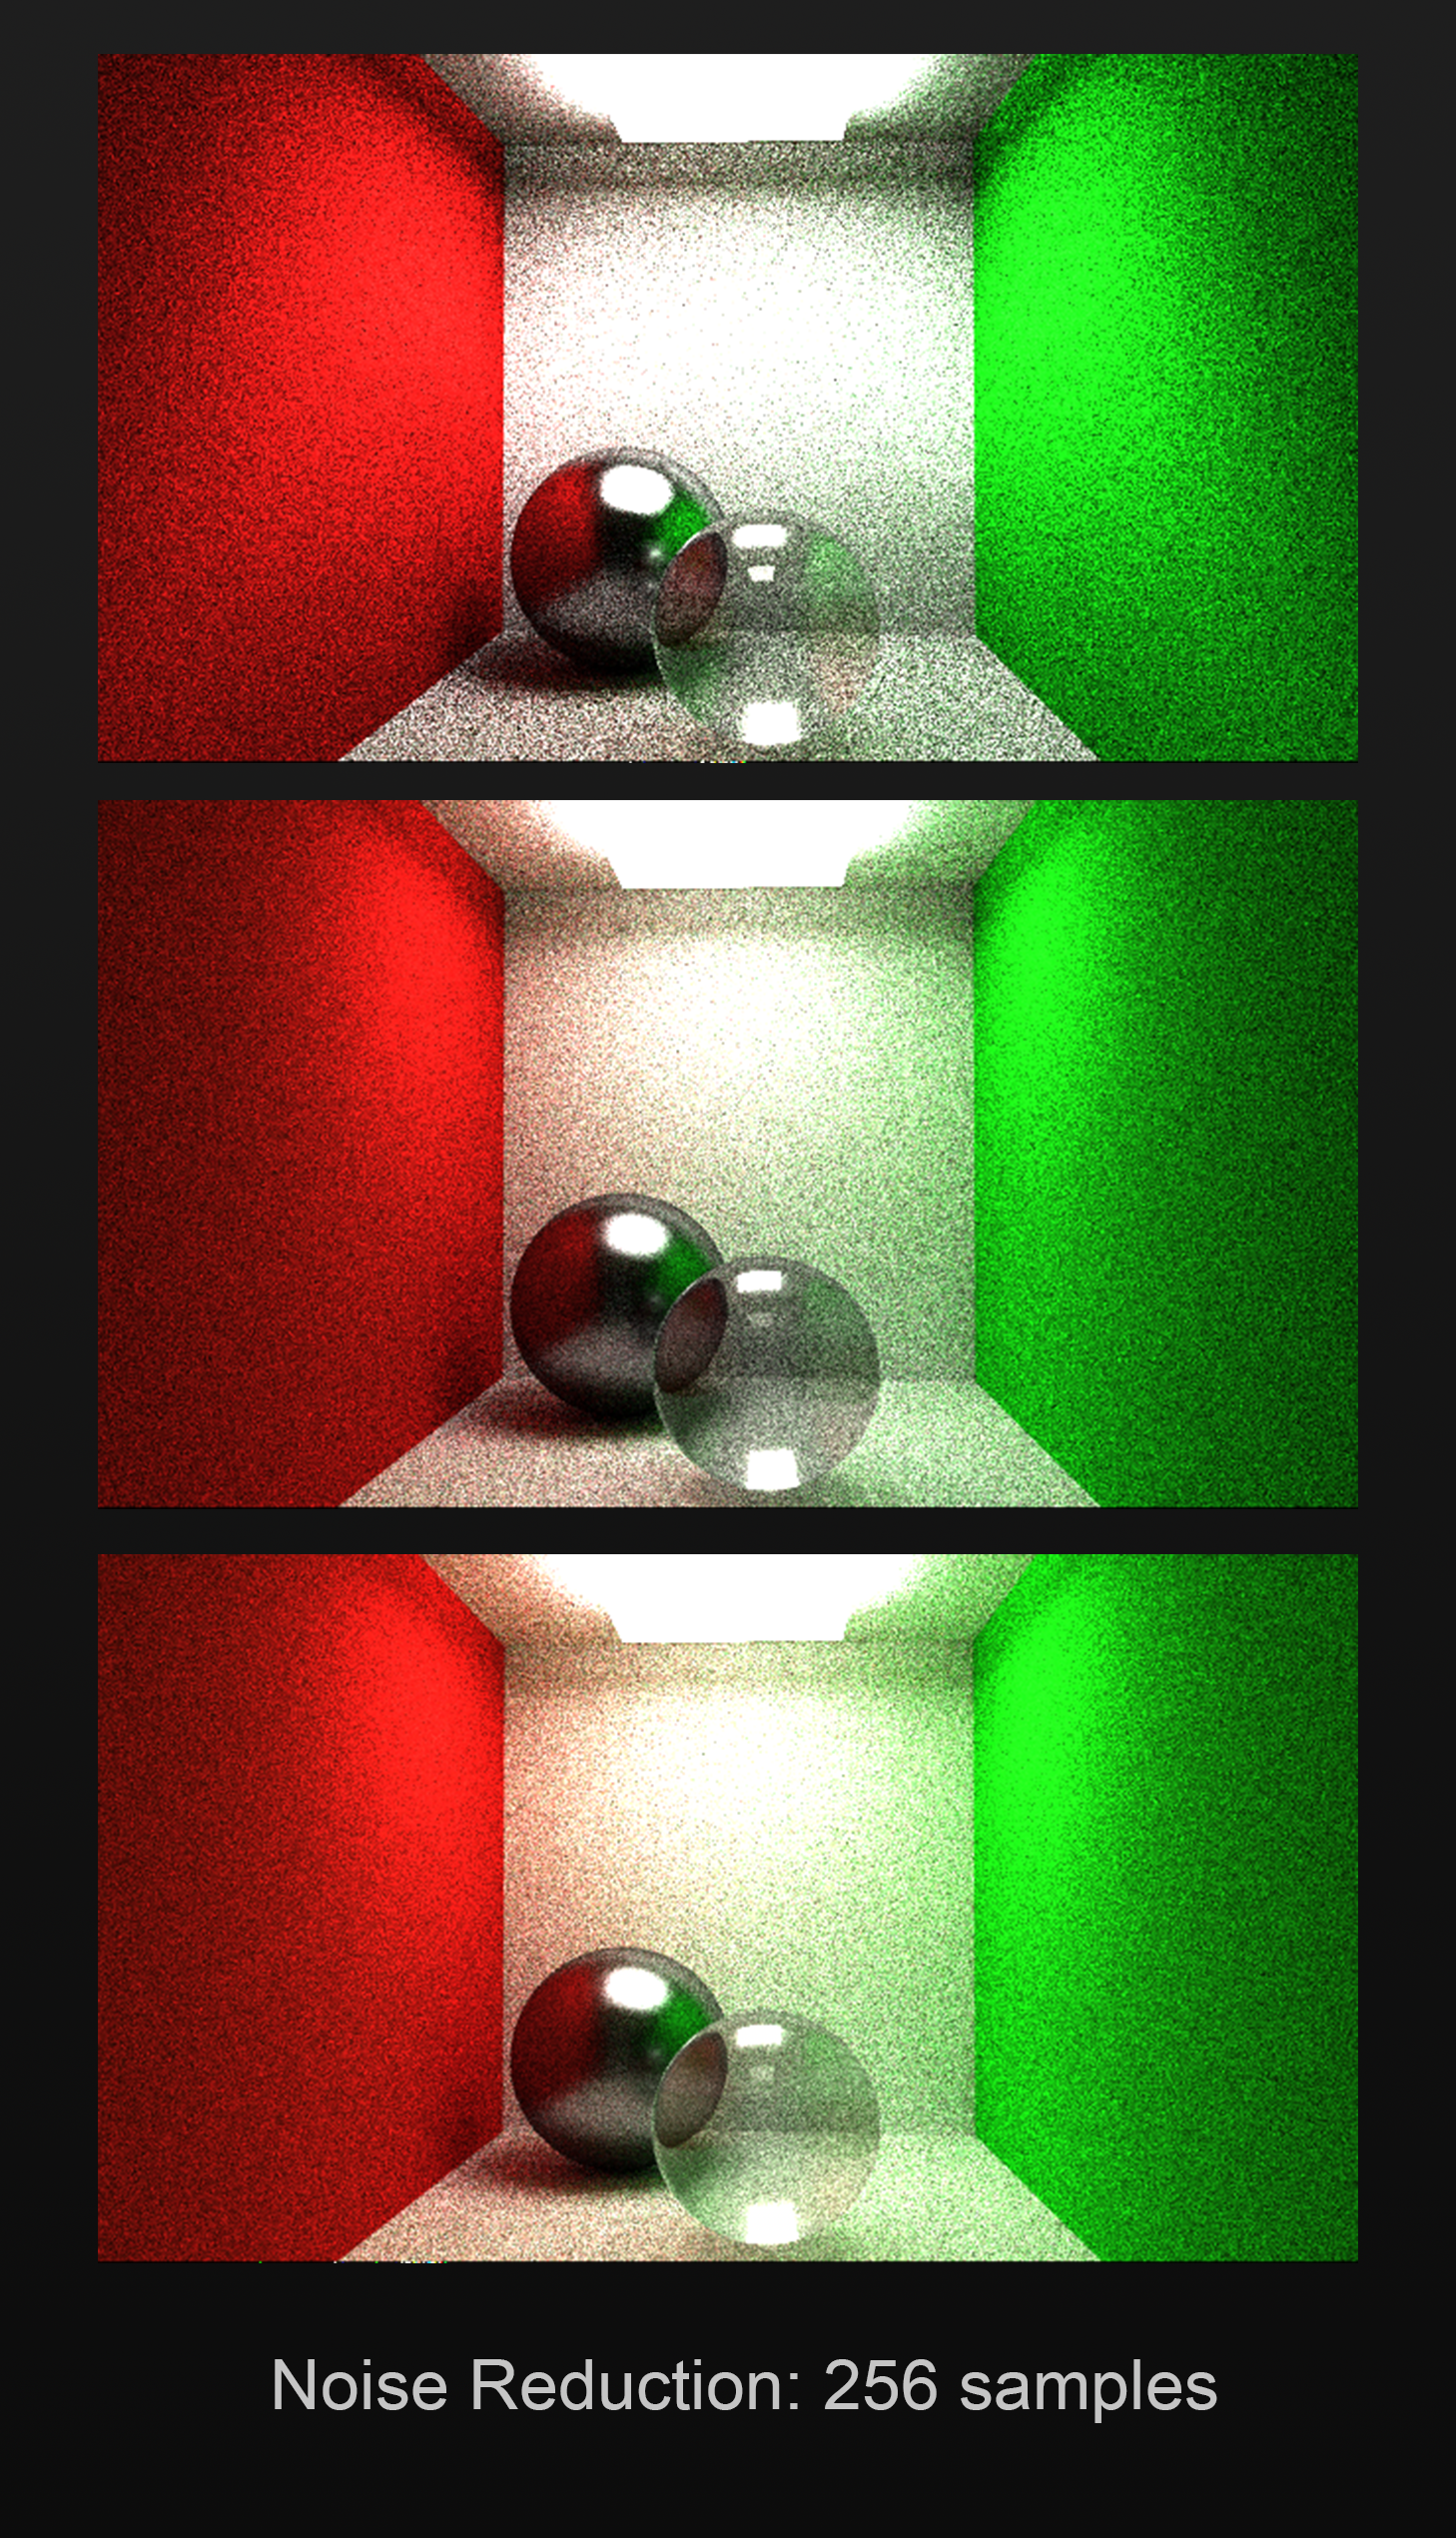 Noise reduction in LightWhat pathtracer